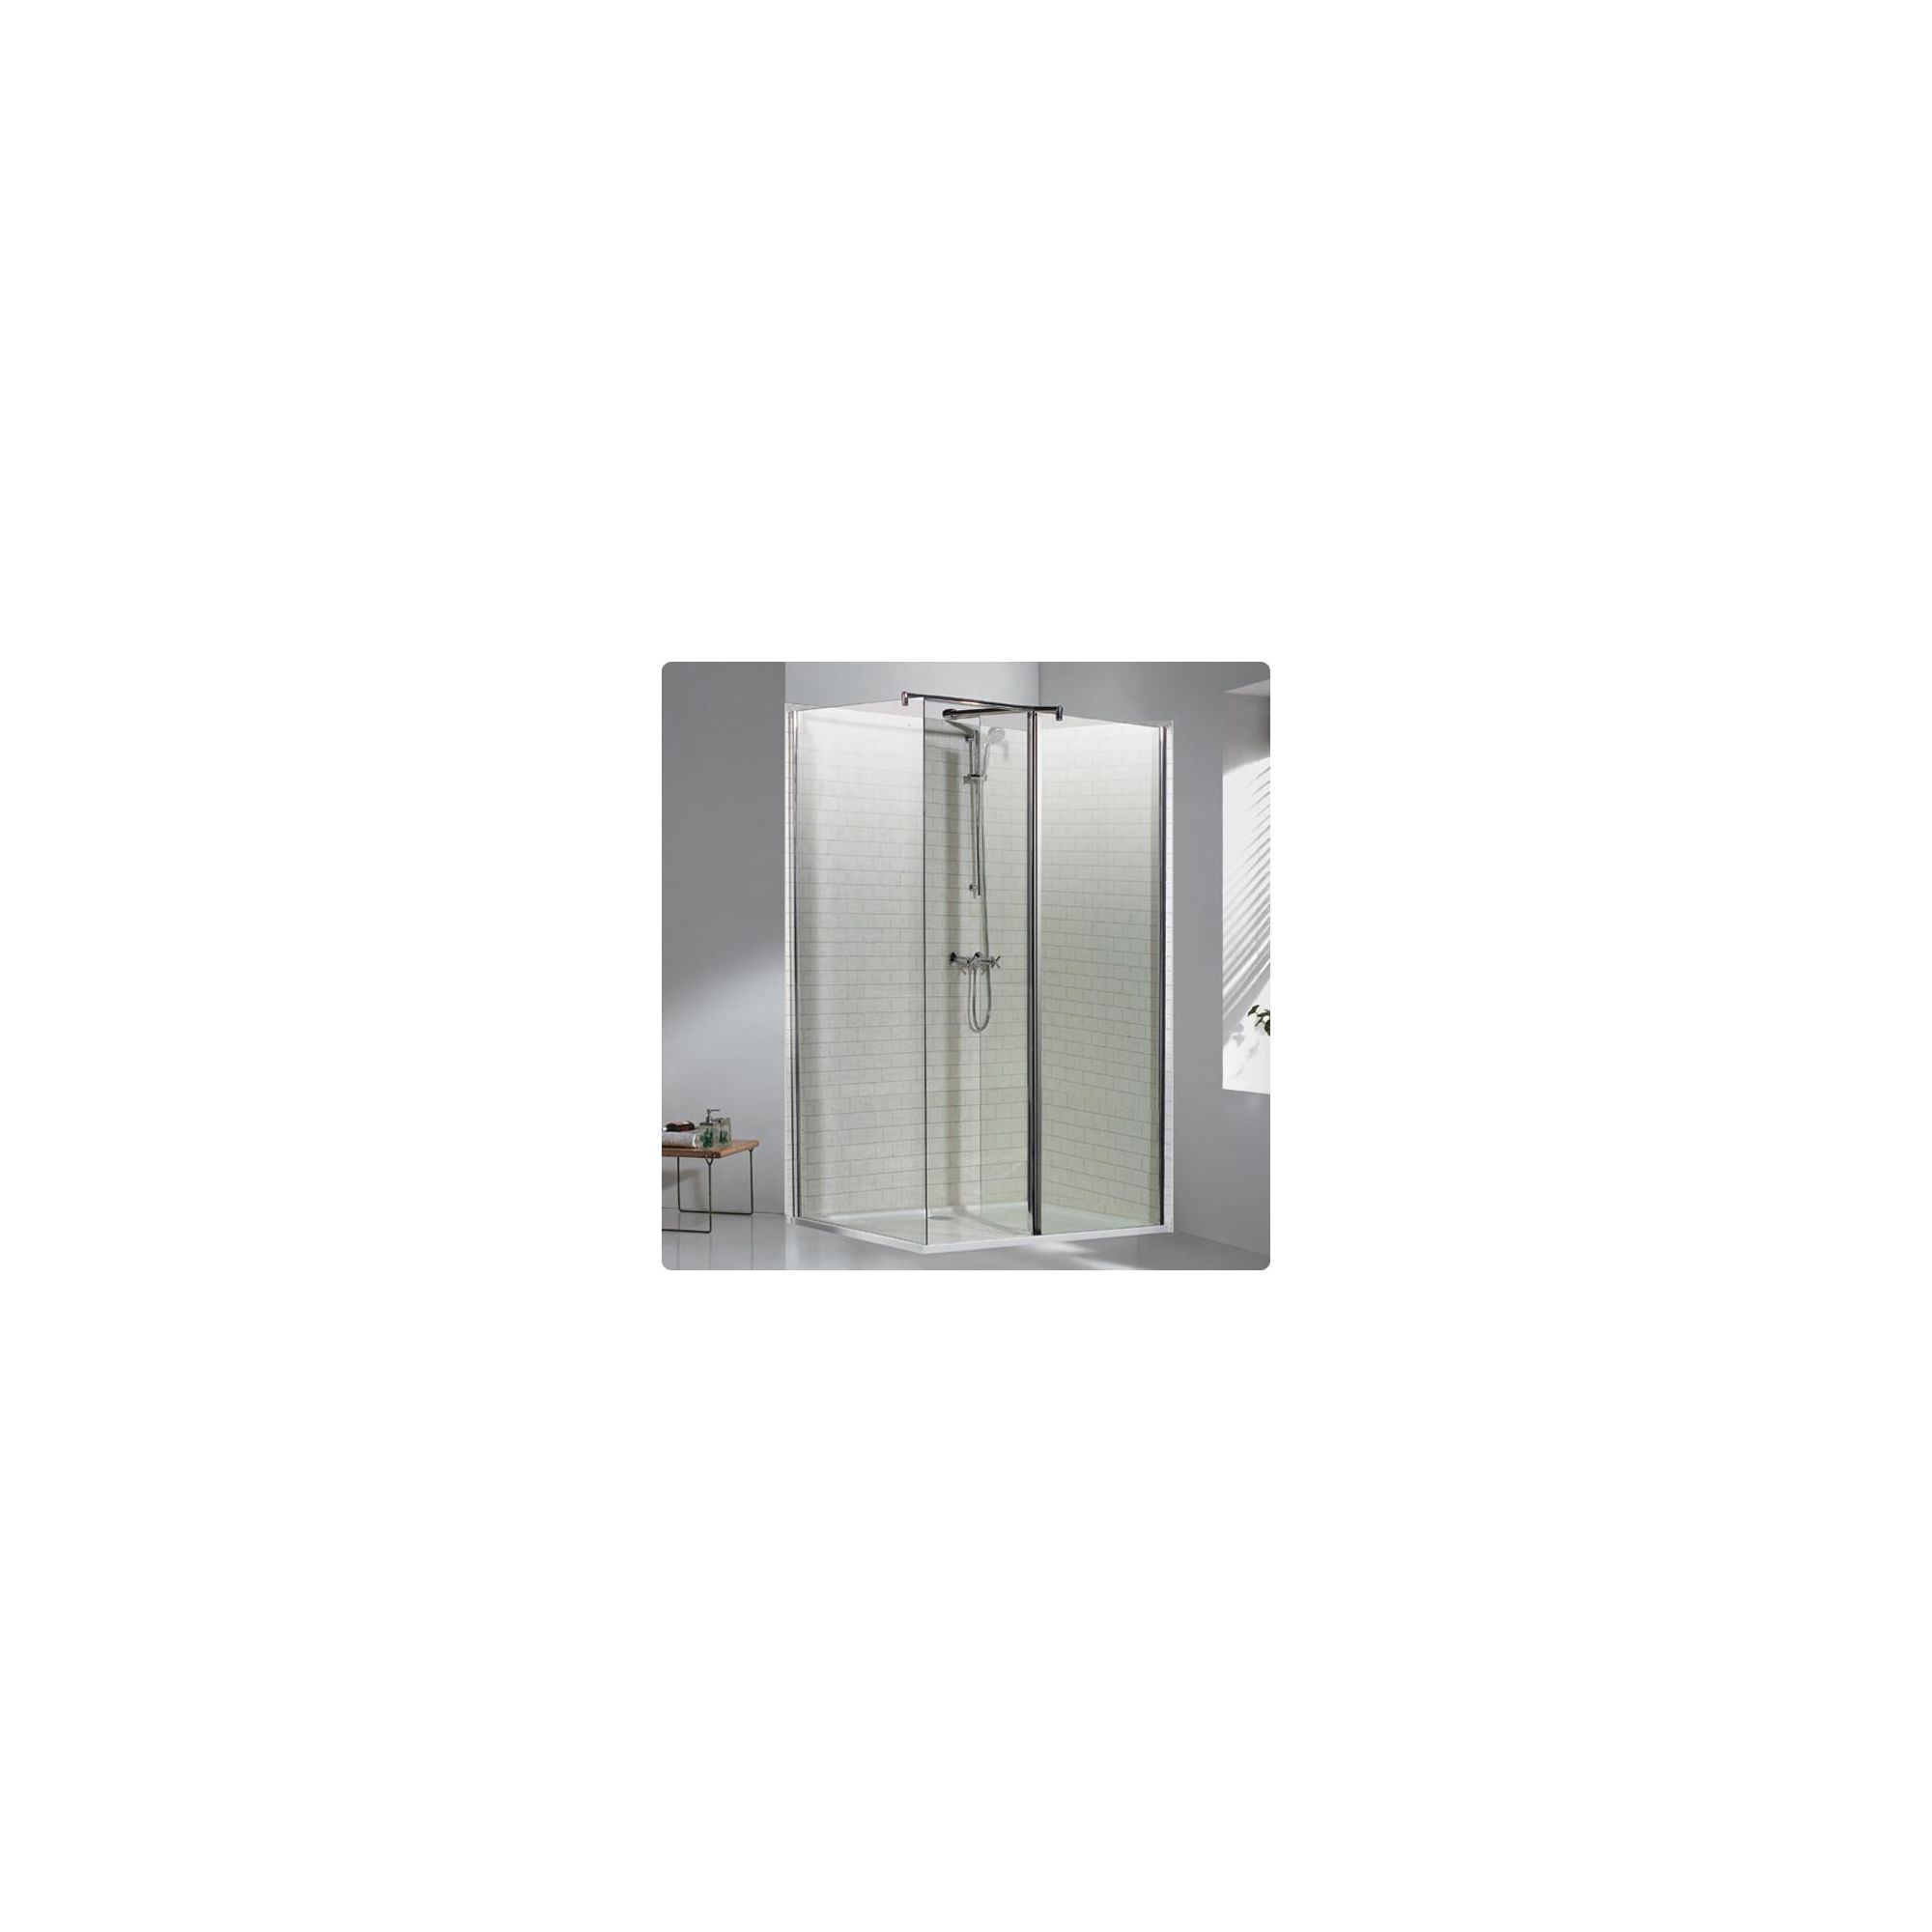 Duchy Choice Silver Walk-In Shower Enclosure 1700mm x 800mm (Complete with Tray), 6mm Glass at Tesco Direct